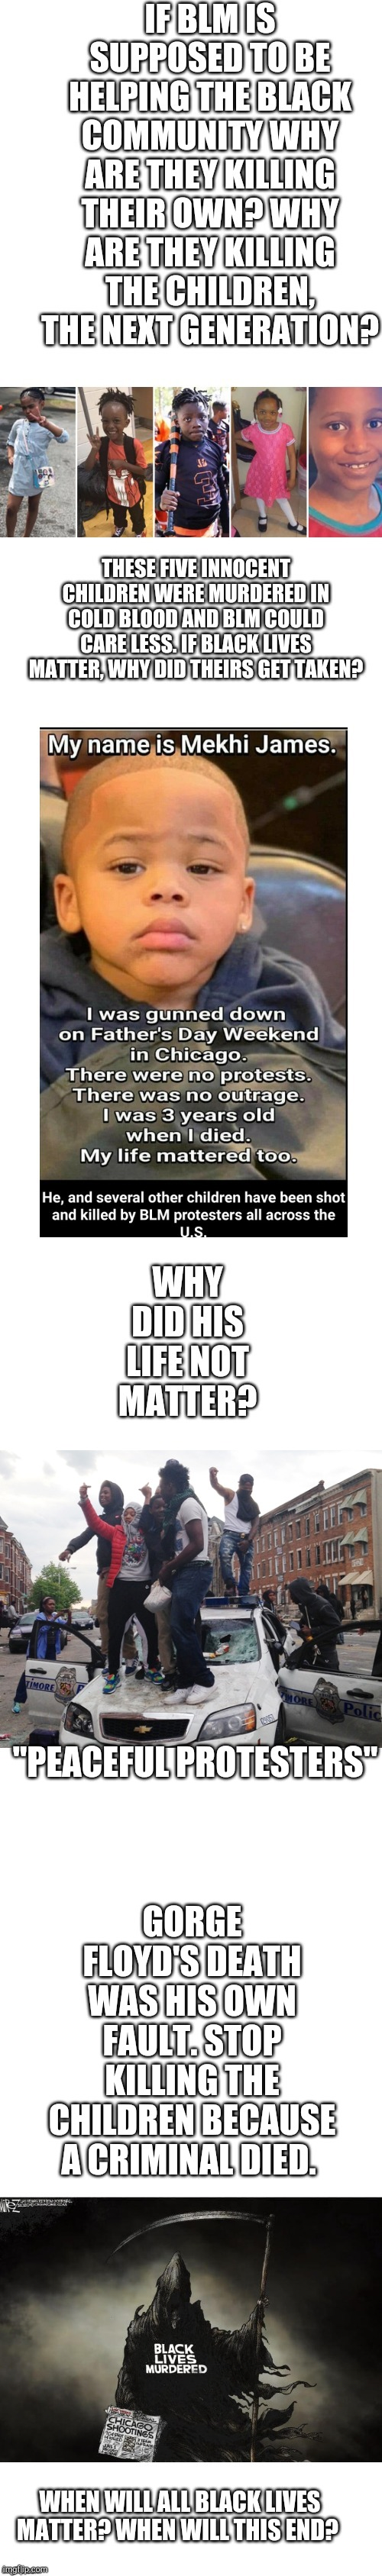 "When will all black lives matter? |  GORGE FLOYD'S DEATH WAS HIS OWN FAULT. STOP KILLING THE CHILDREN BECAUSE A CRIMINAL DIED. ""PEACEFUL PROTESTERS""; WHEN WILL ALL BLACK LIVES MATTER? WHEN WILL THIS END? 